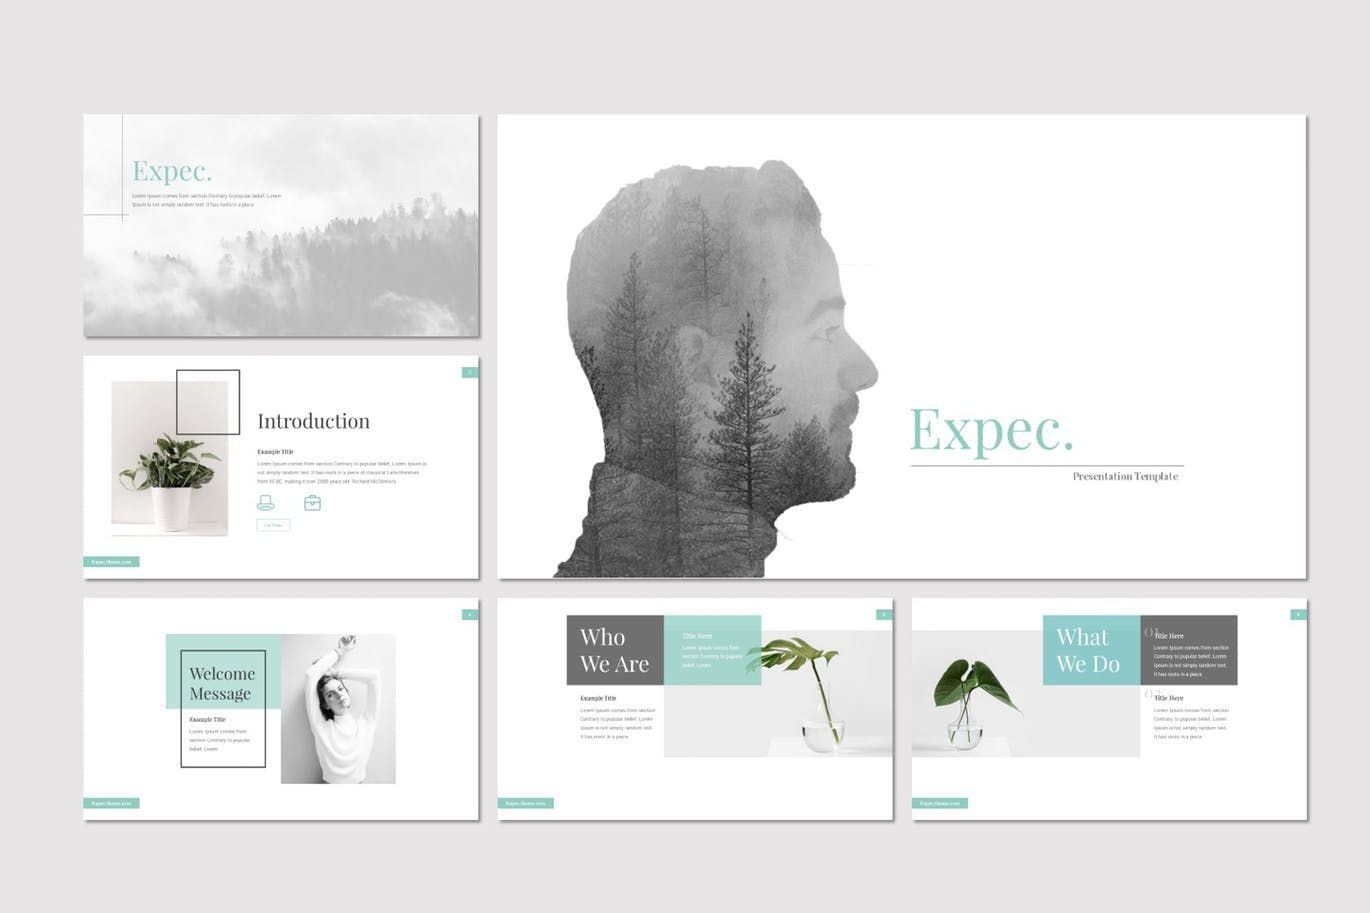 Expec - PowerPoint Template, Slide 2, 07820, Presentation Templates — PoweredTemplate.com